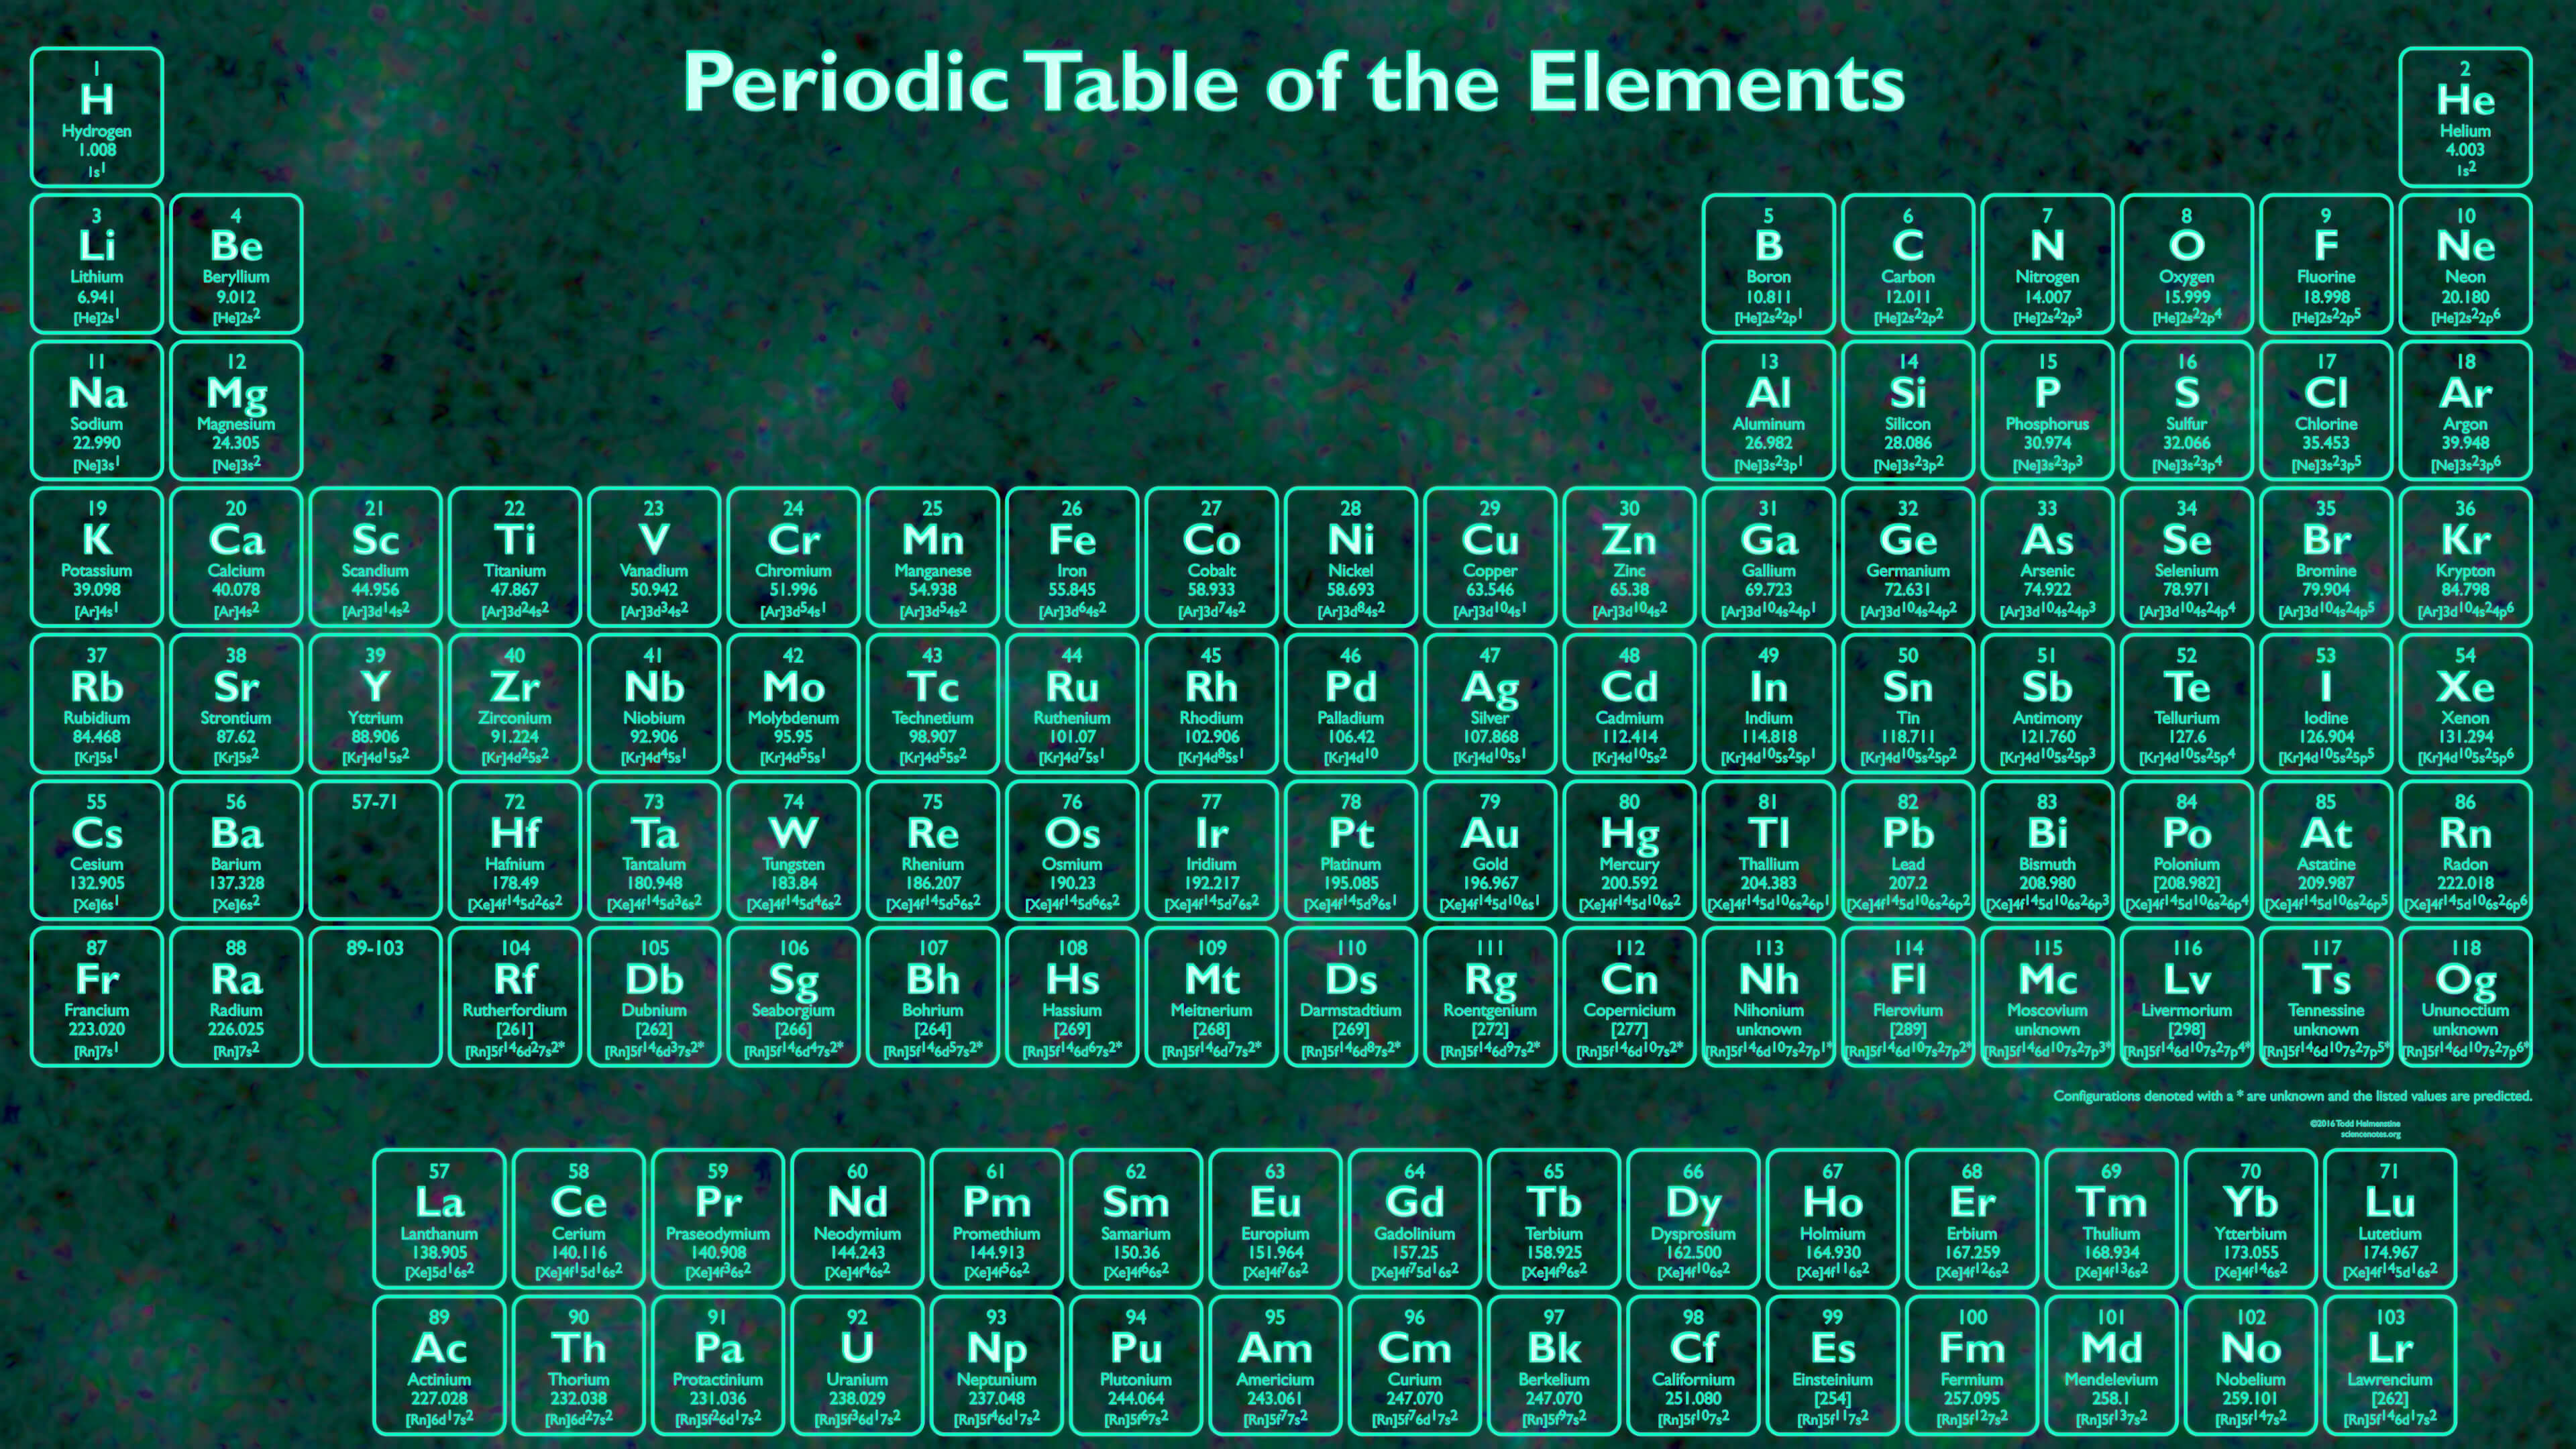 Glow in the dark 4k periodic table wallpaper with 118 elements glow in the dark 4k periodic table with 118 elements each element urtaz Choice Image